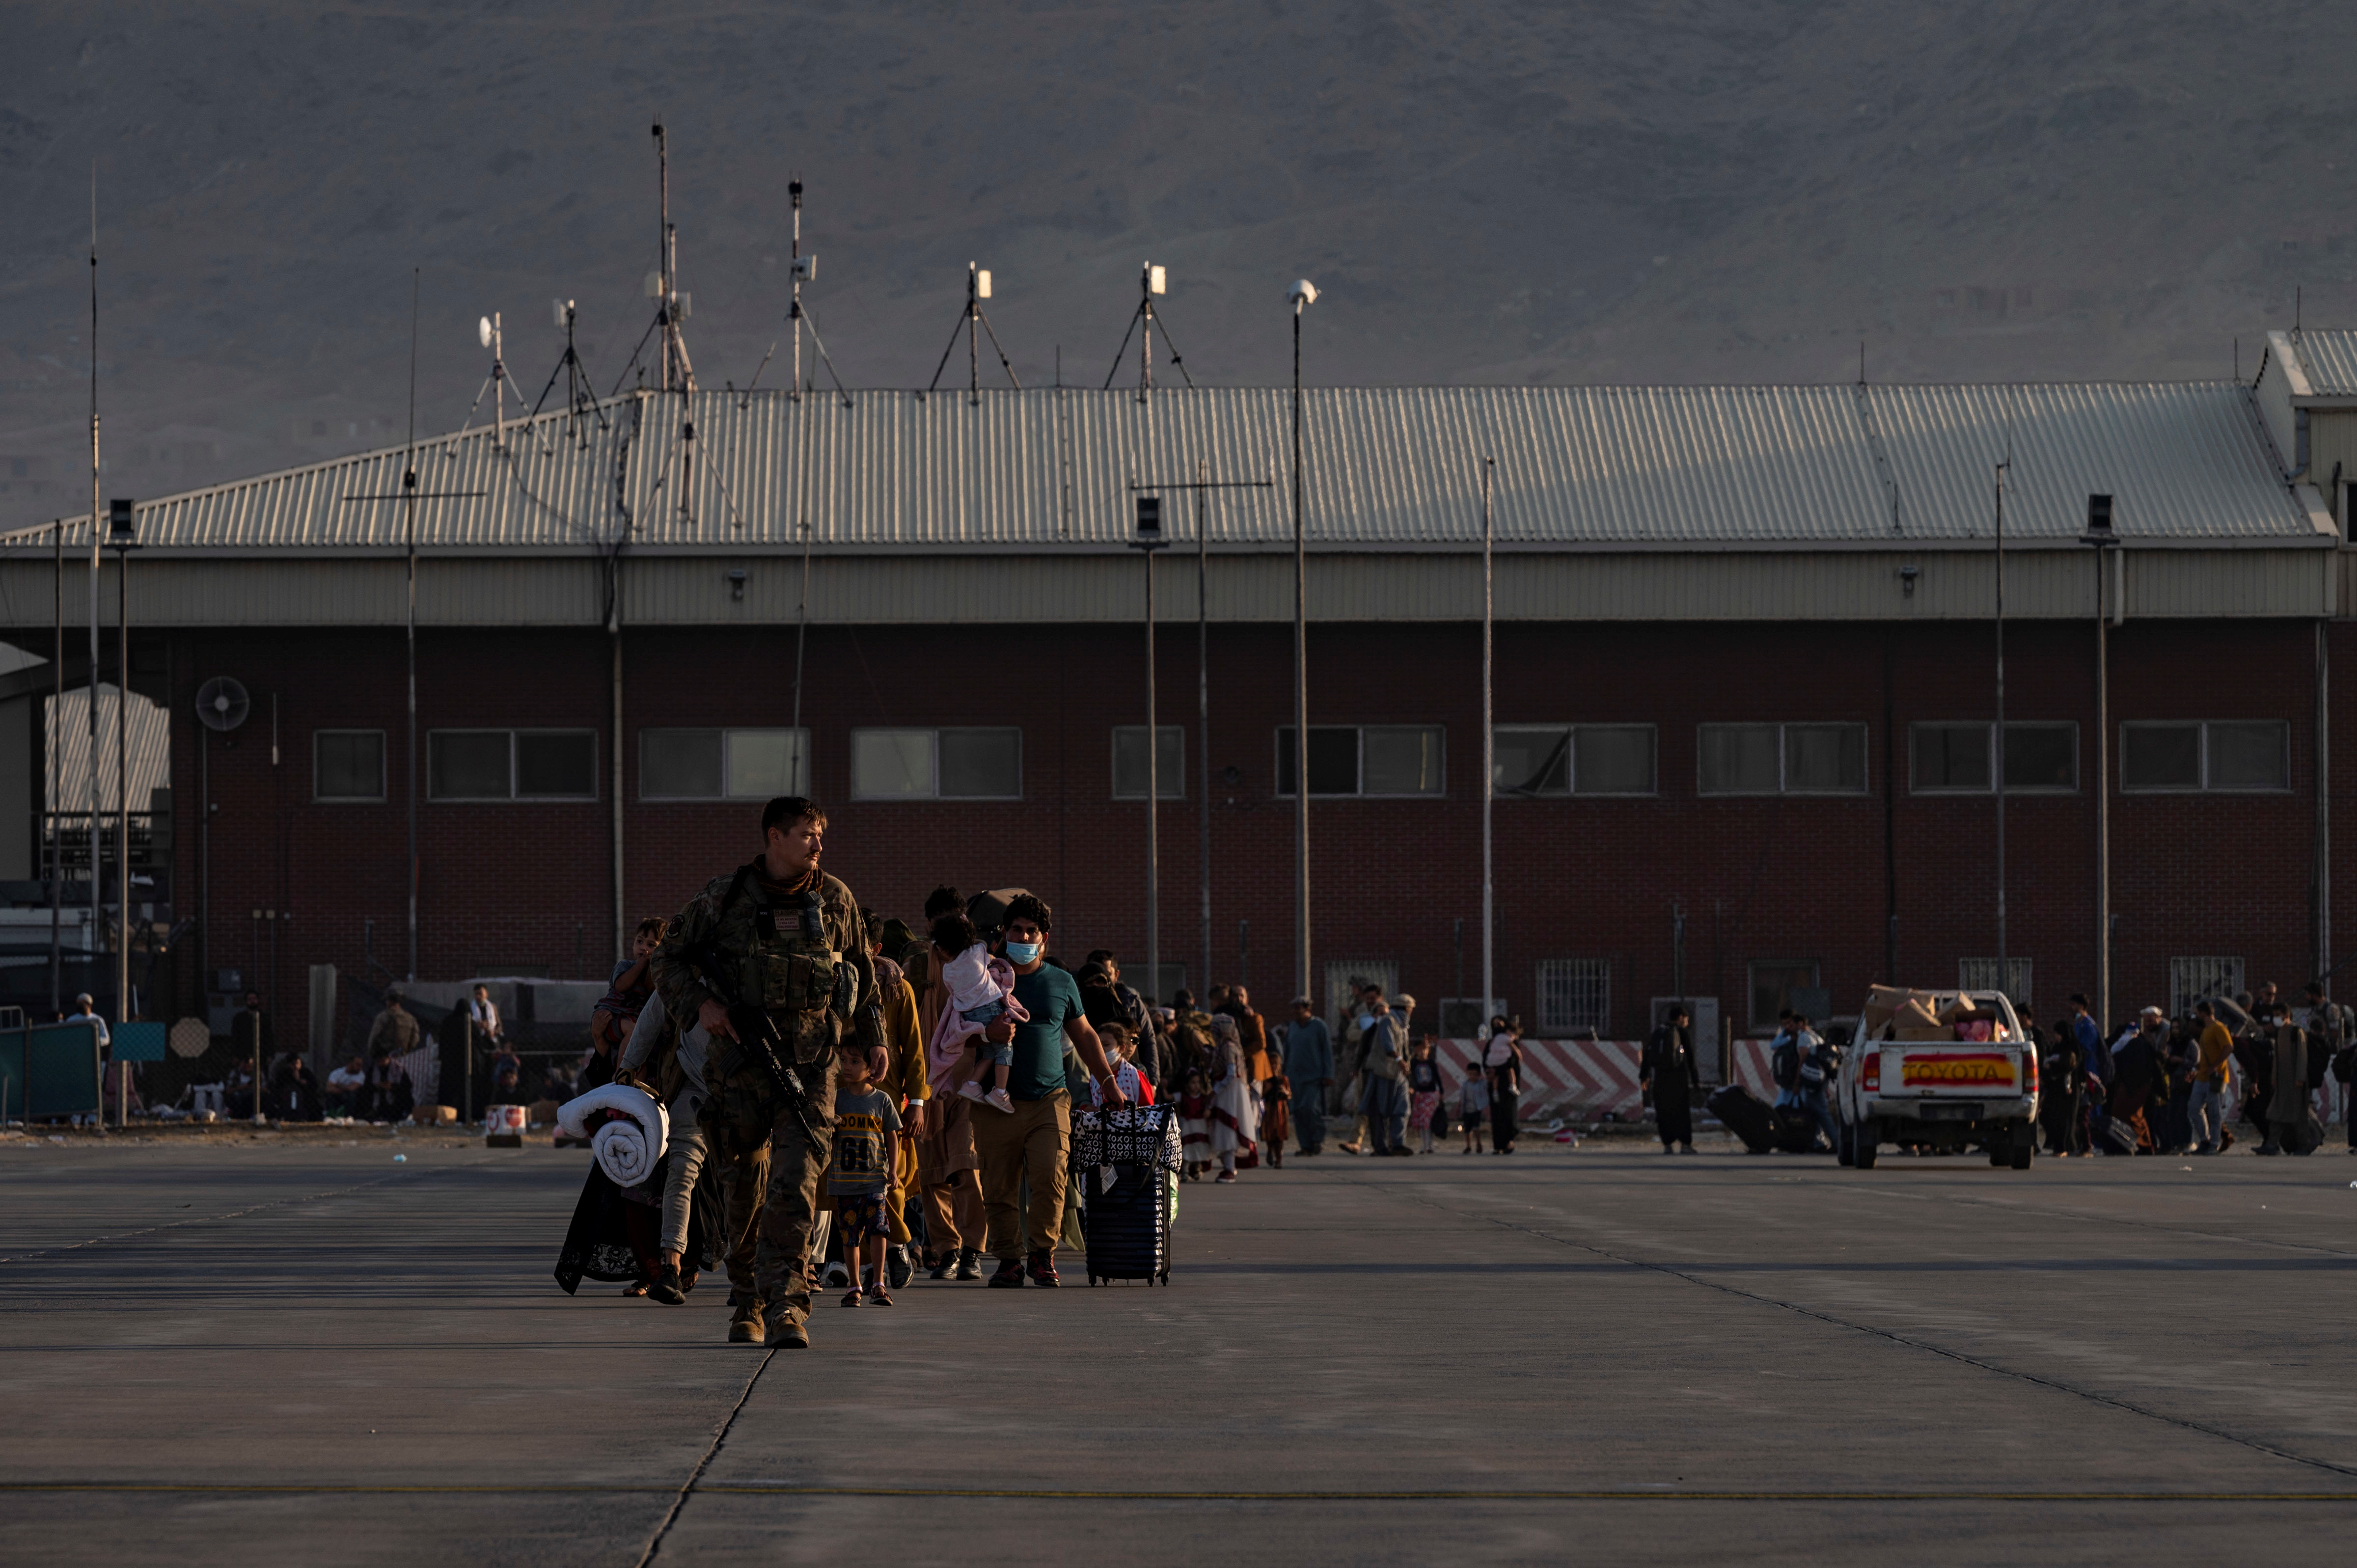 A U.S. Air Force Airman guides qualified evacuees aboard a U.S. Air Force C-17 Globemaster III at Hamid Karzai International Airport (HKIA), Afghanistan, August 24, 2021.  U.S. Air Force/Senior Airman Taylor Crul/Handout via REUTERS THIS IMAGE HAS BEEN SUPPLIED BY A THIRD PARTY.